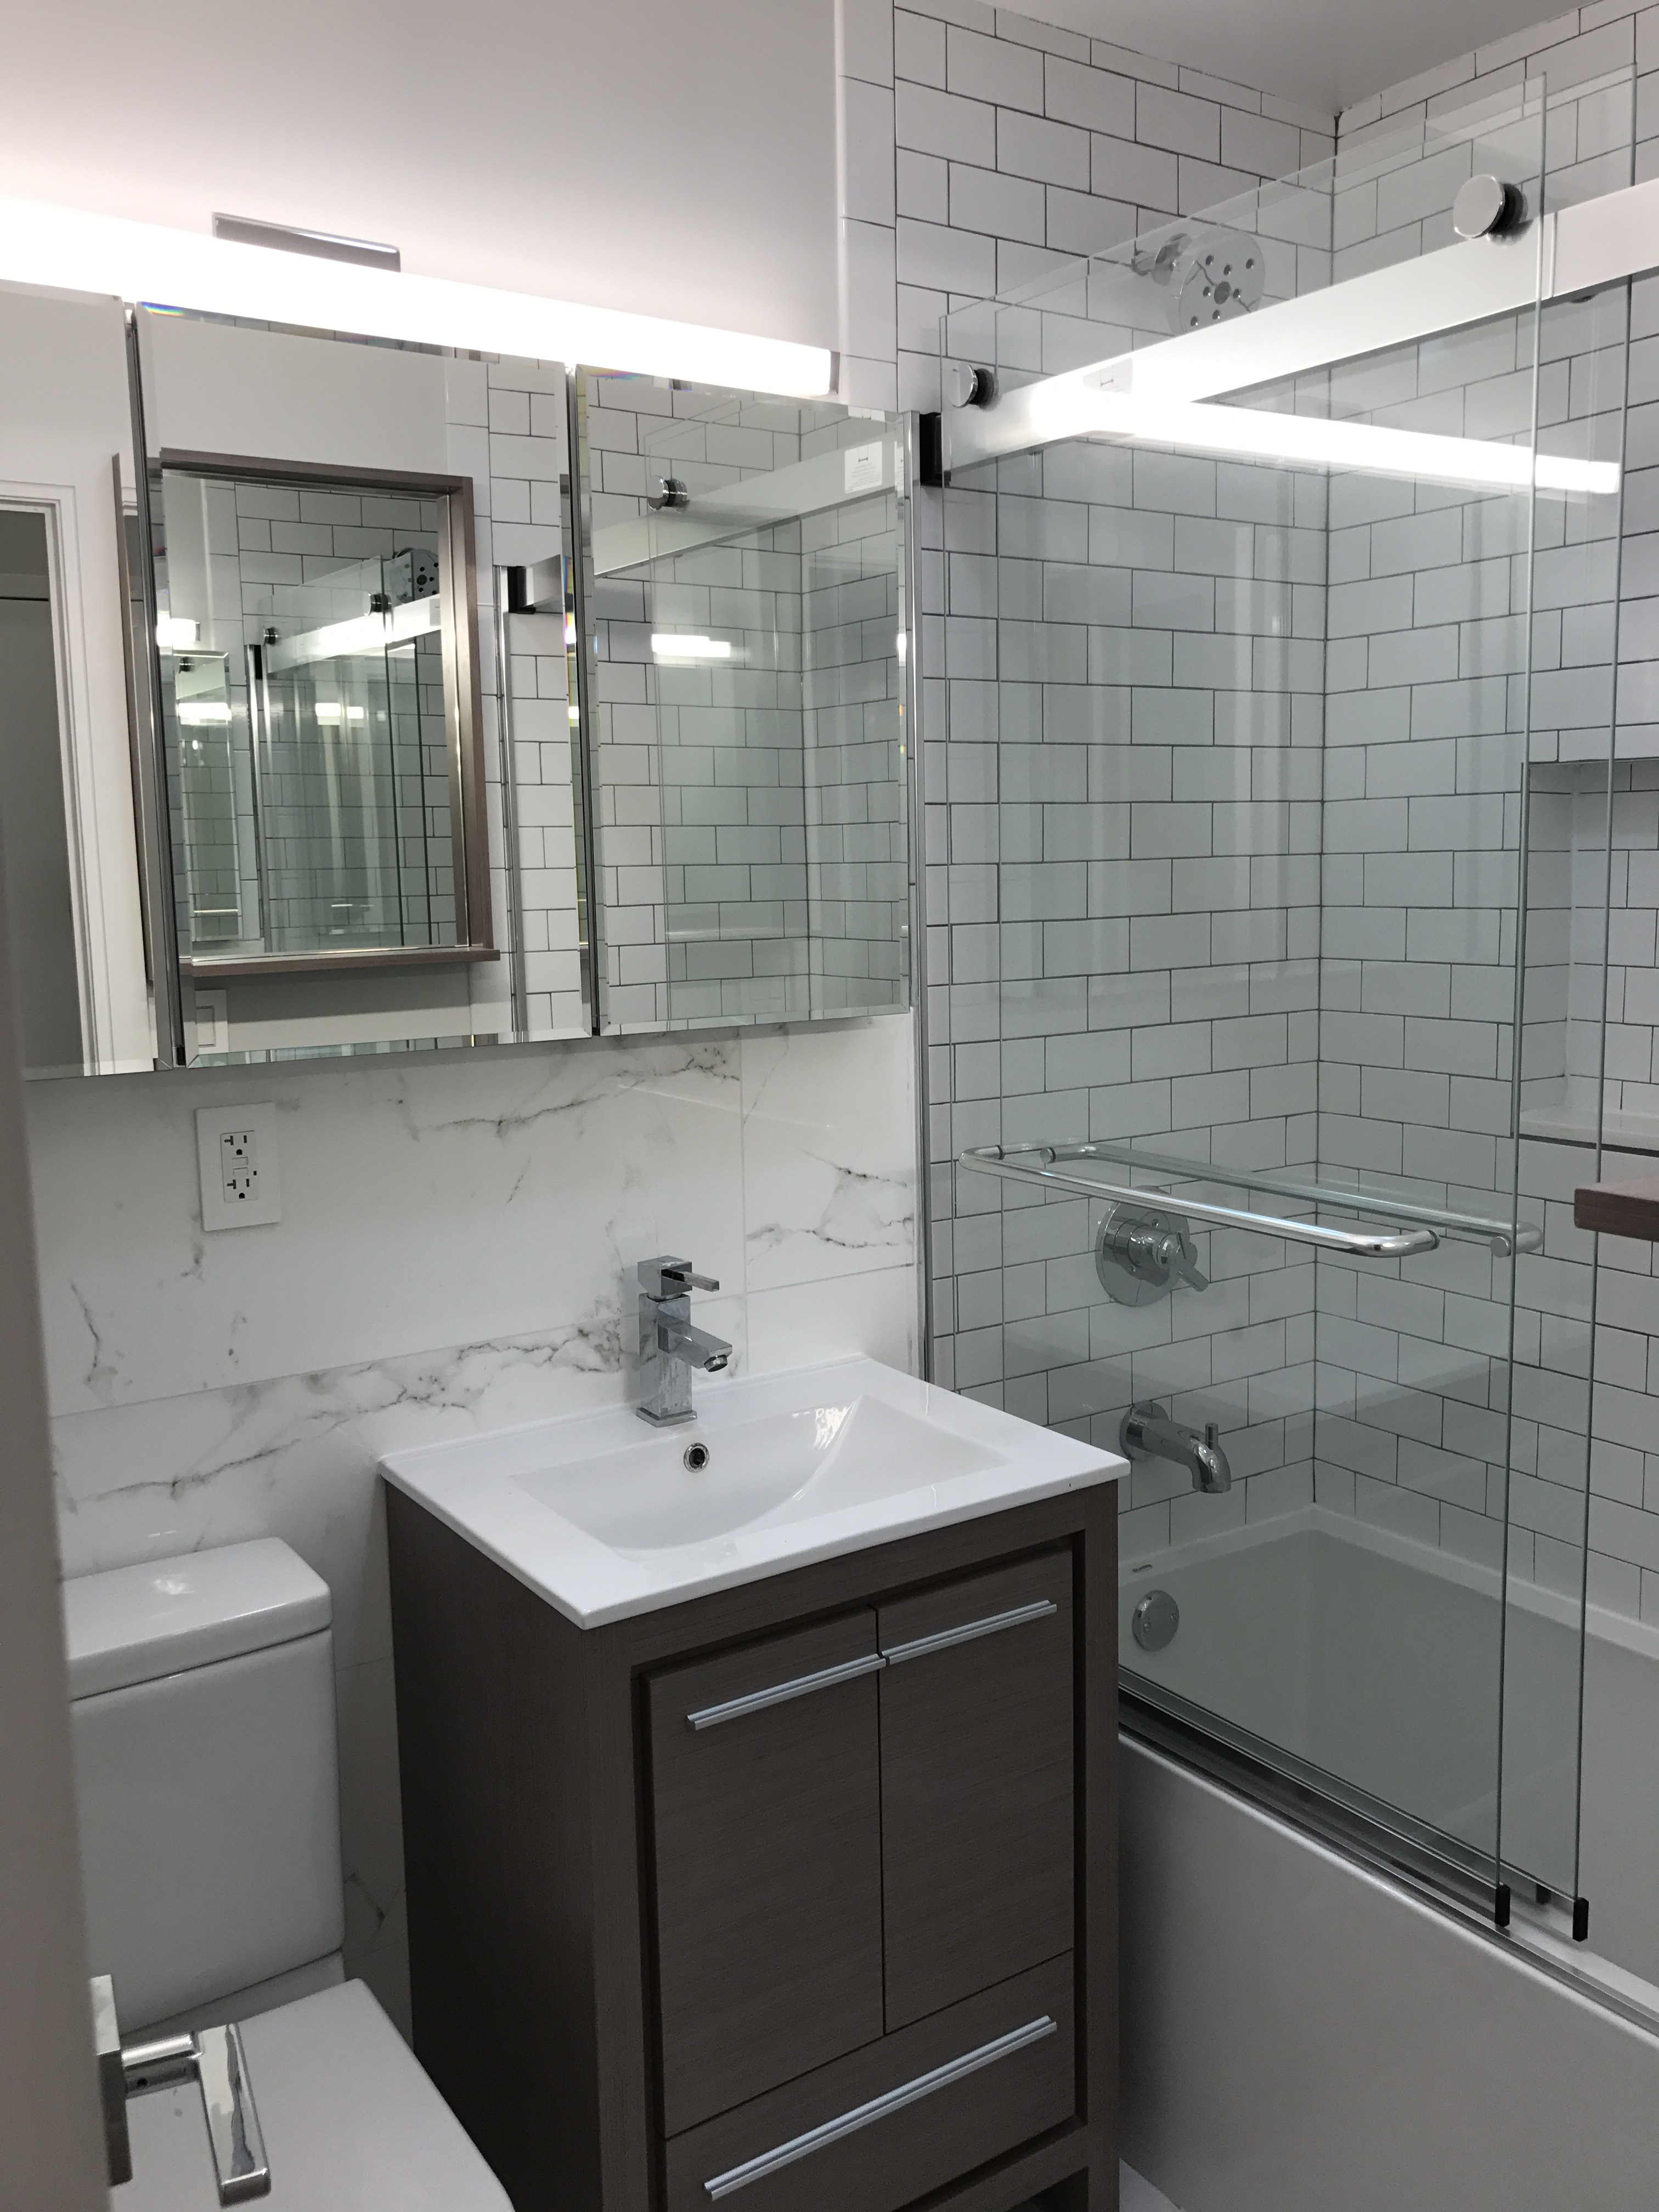 216-218 East 84th St, 3A - Upper East Side, New York